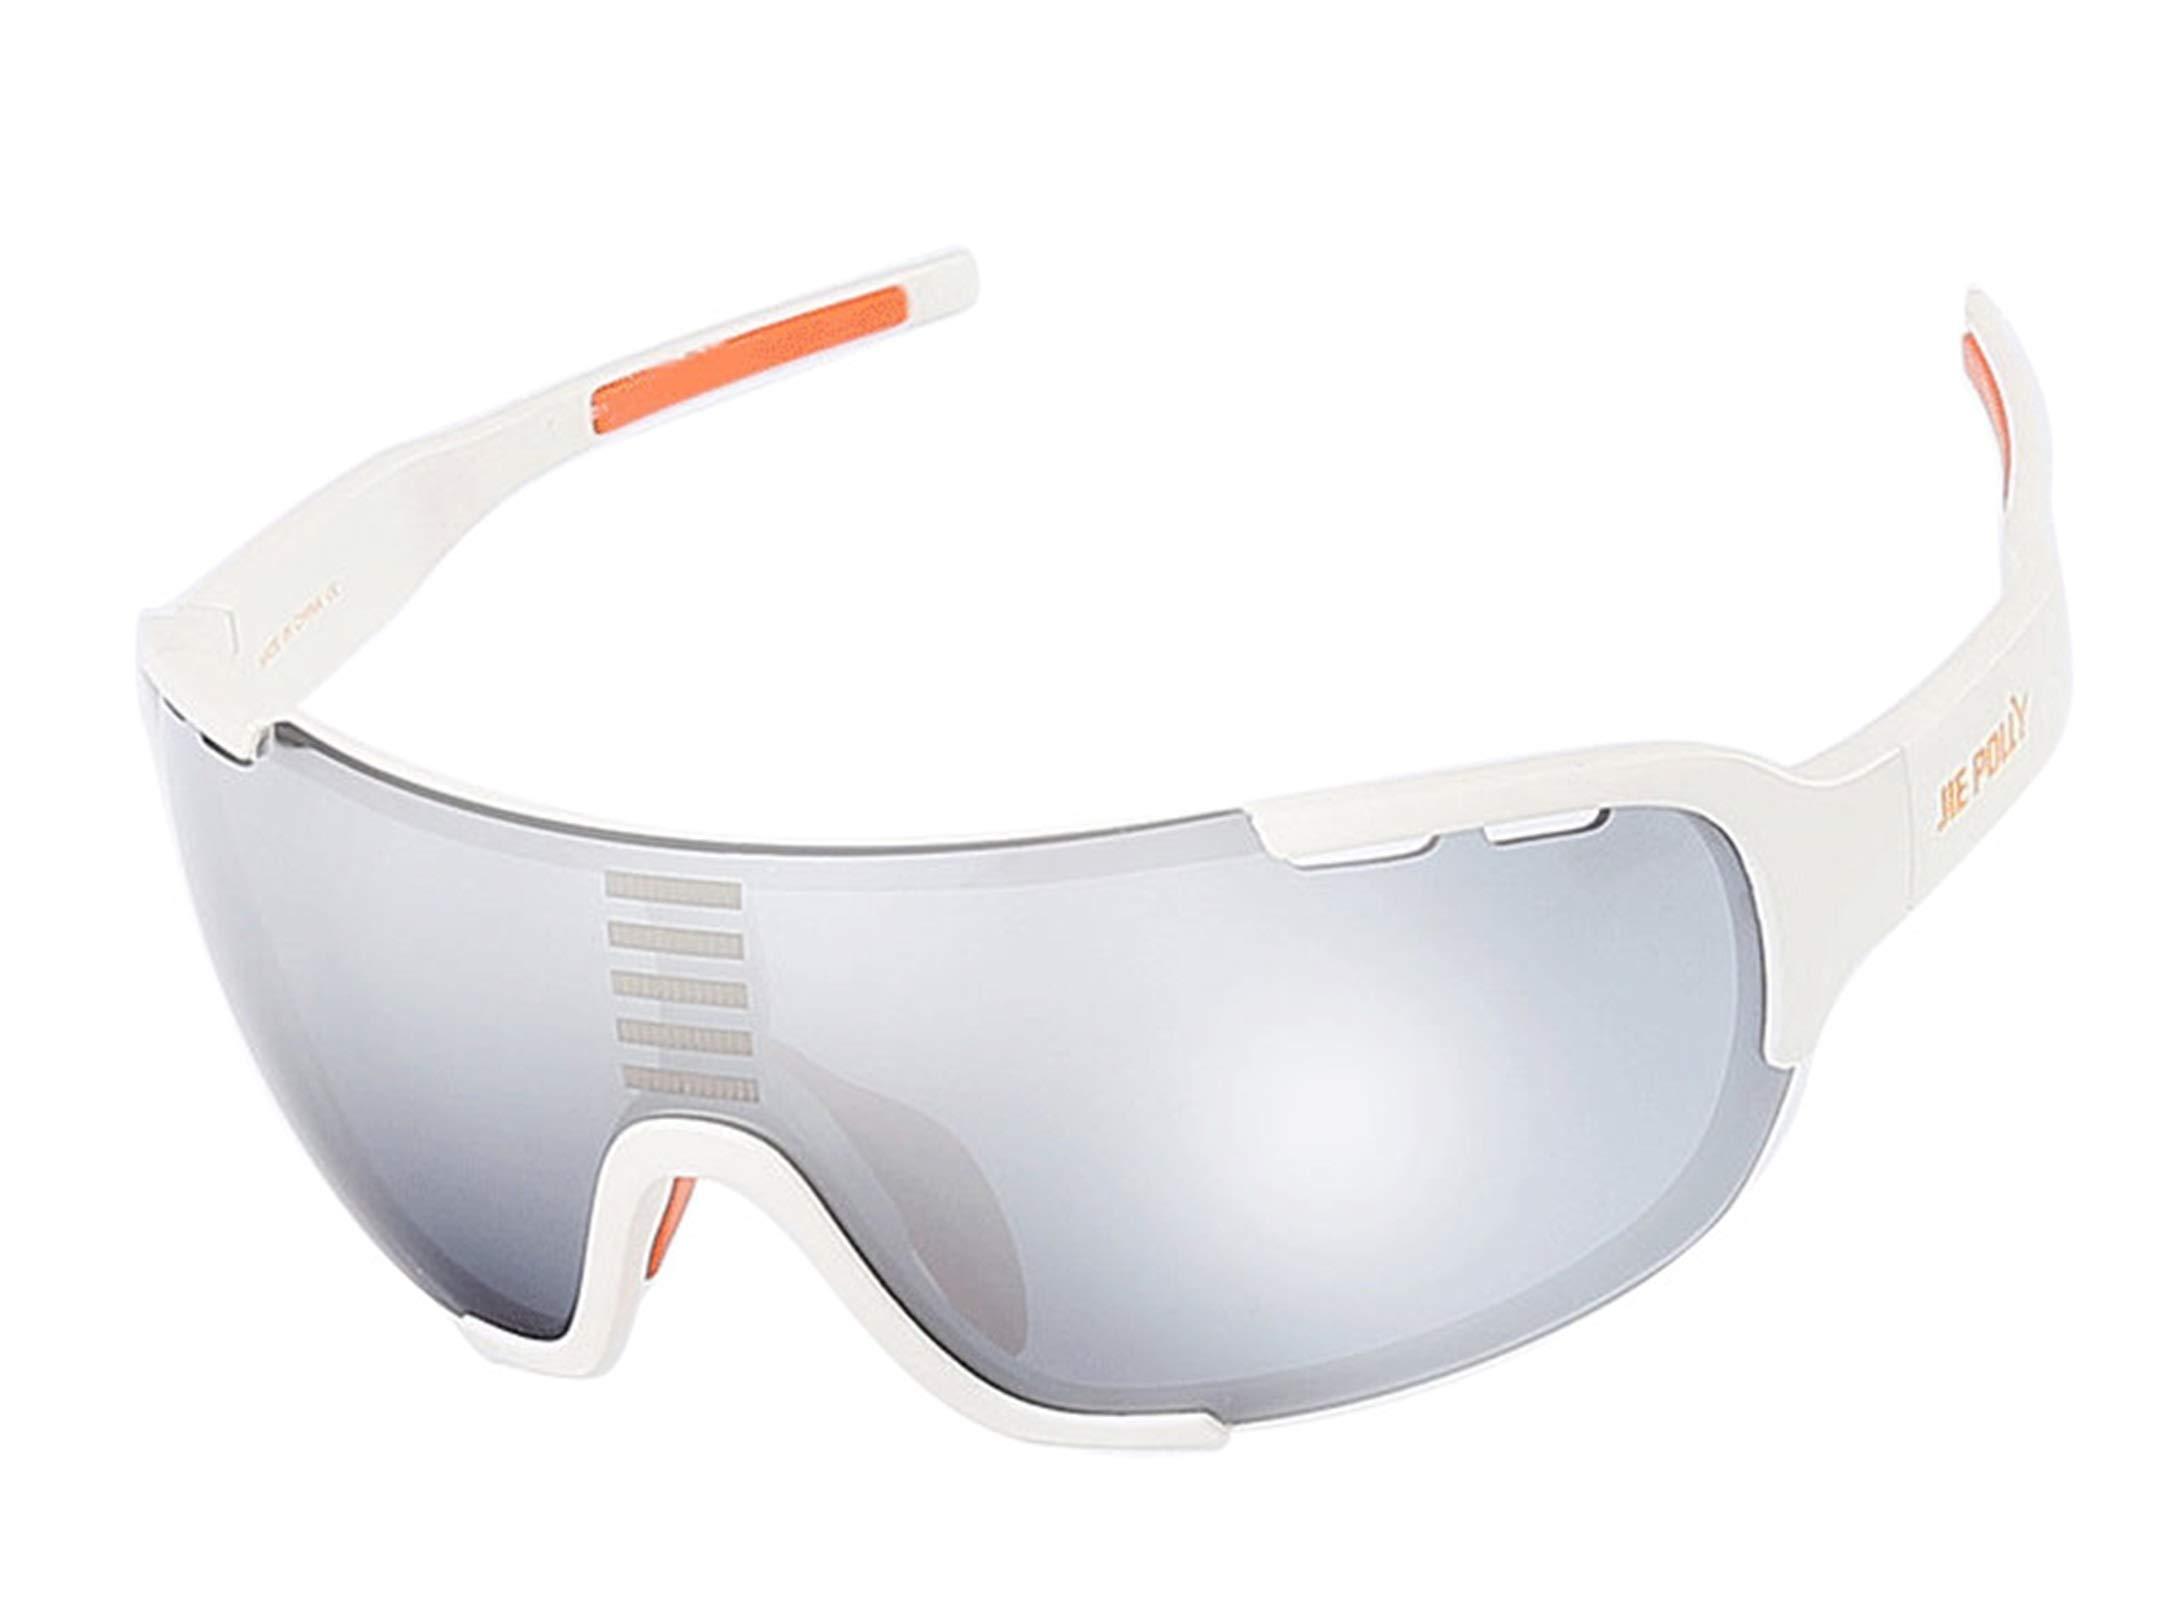 Adisaer Motorsport Goggles Cycling Color Changing Sports Fishing Outdoor Hiking Goggles White for Adults